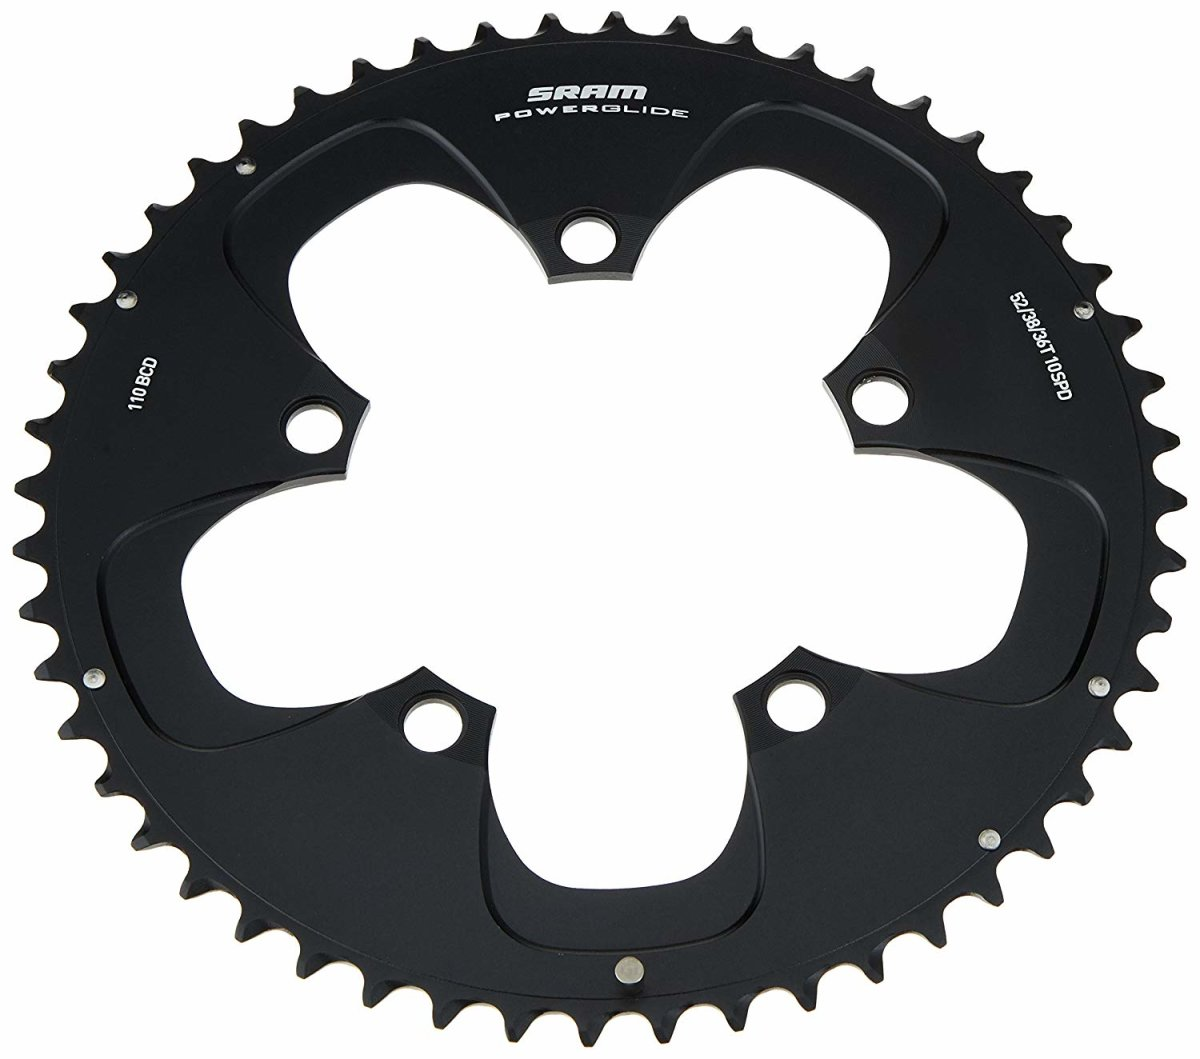 Звезда Sram Road Red 52T S1 110 Alum 4mm Black (52-36, 52-38) 2 Road Red 11.6215.198.050